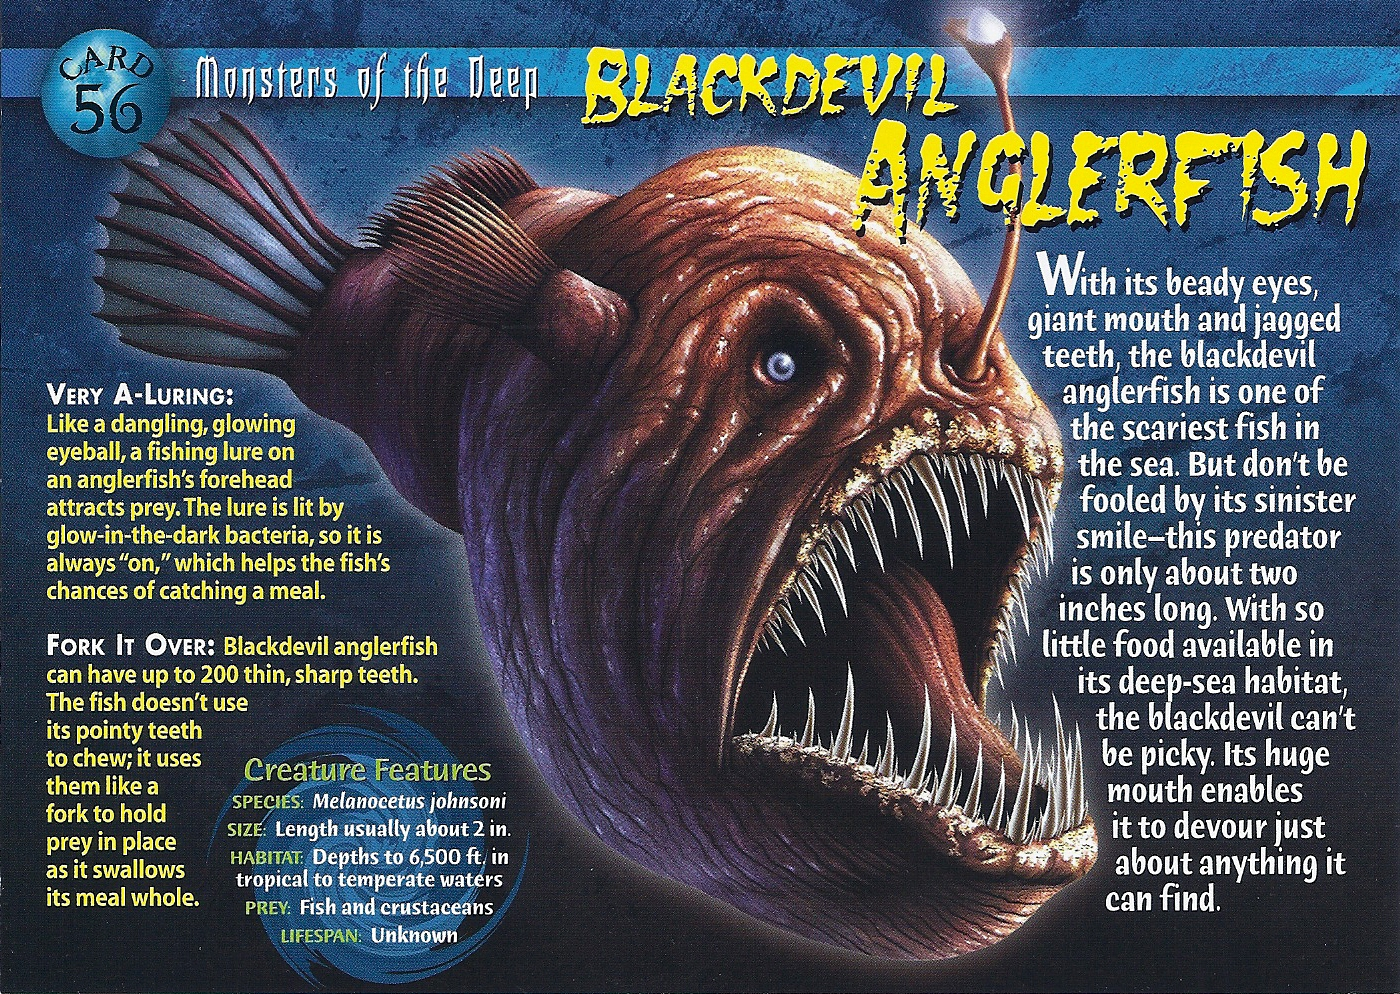 Blackdevil anglerfish wierd n 39 wild creatures wiki for Angler fish size